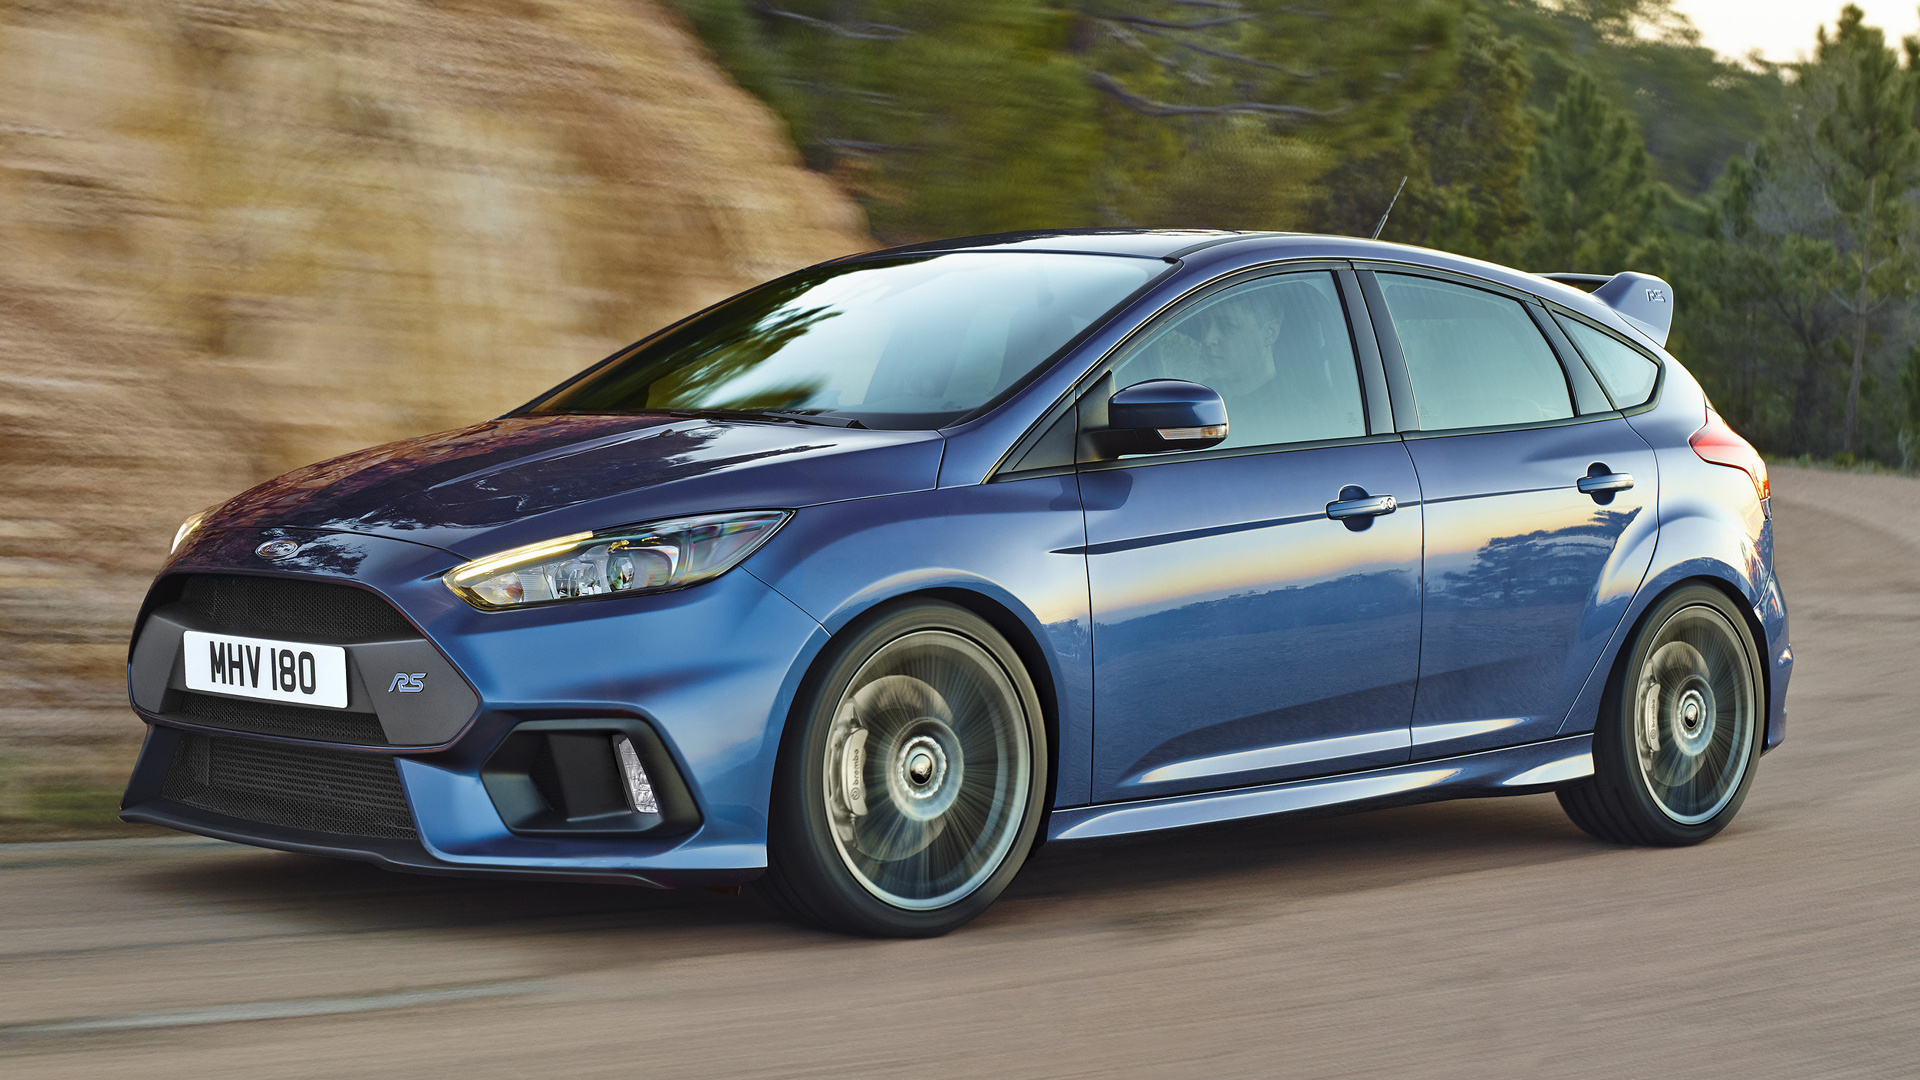 Ford Focus RS 2015 Wallpapers and HD Images 1920x1080